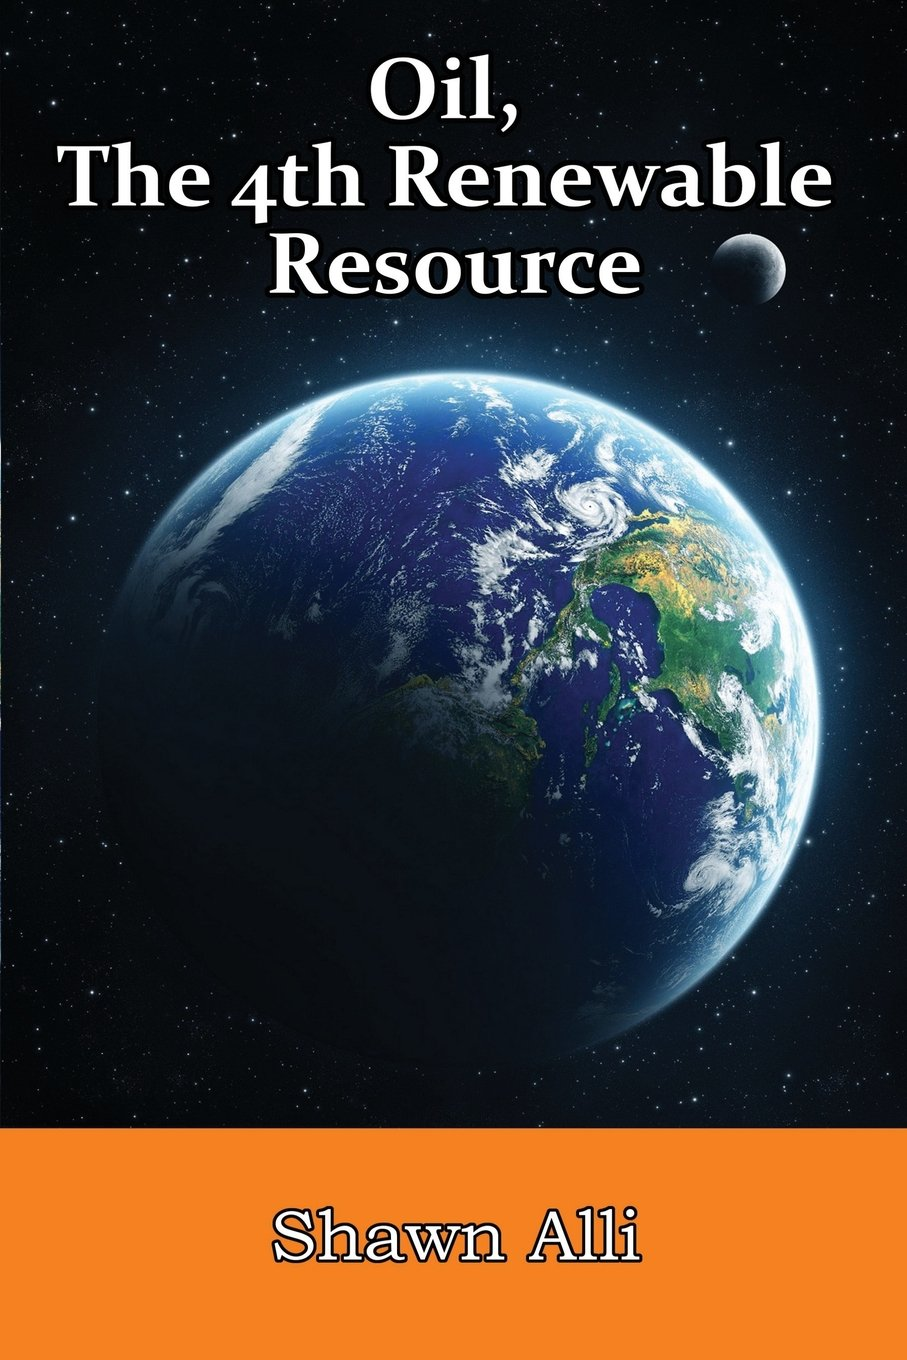 Download Oil, The 4th Renewable Resource ebook